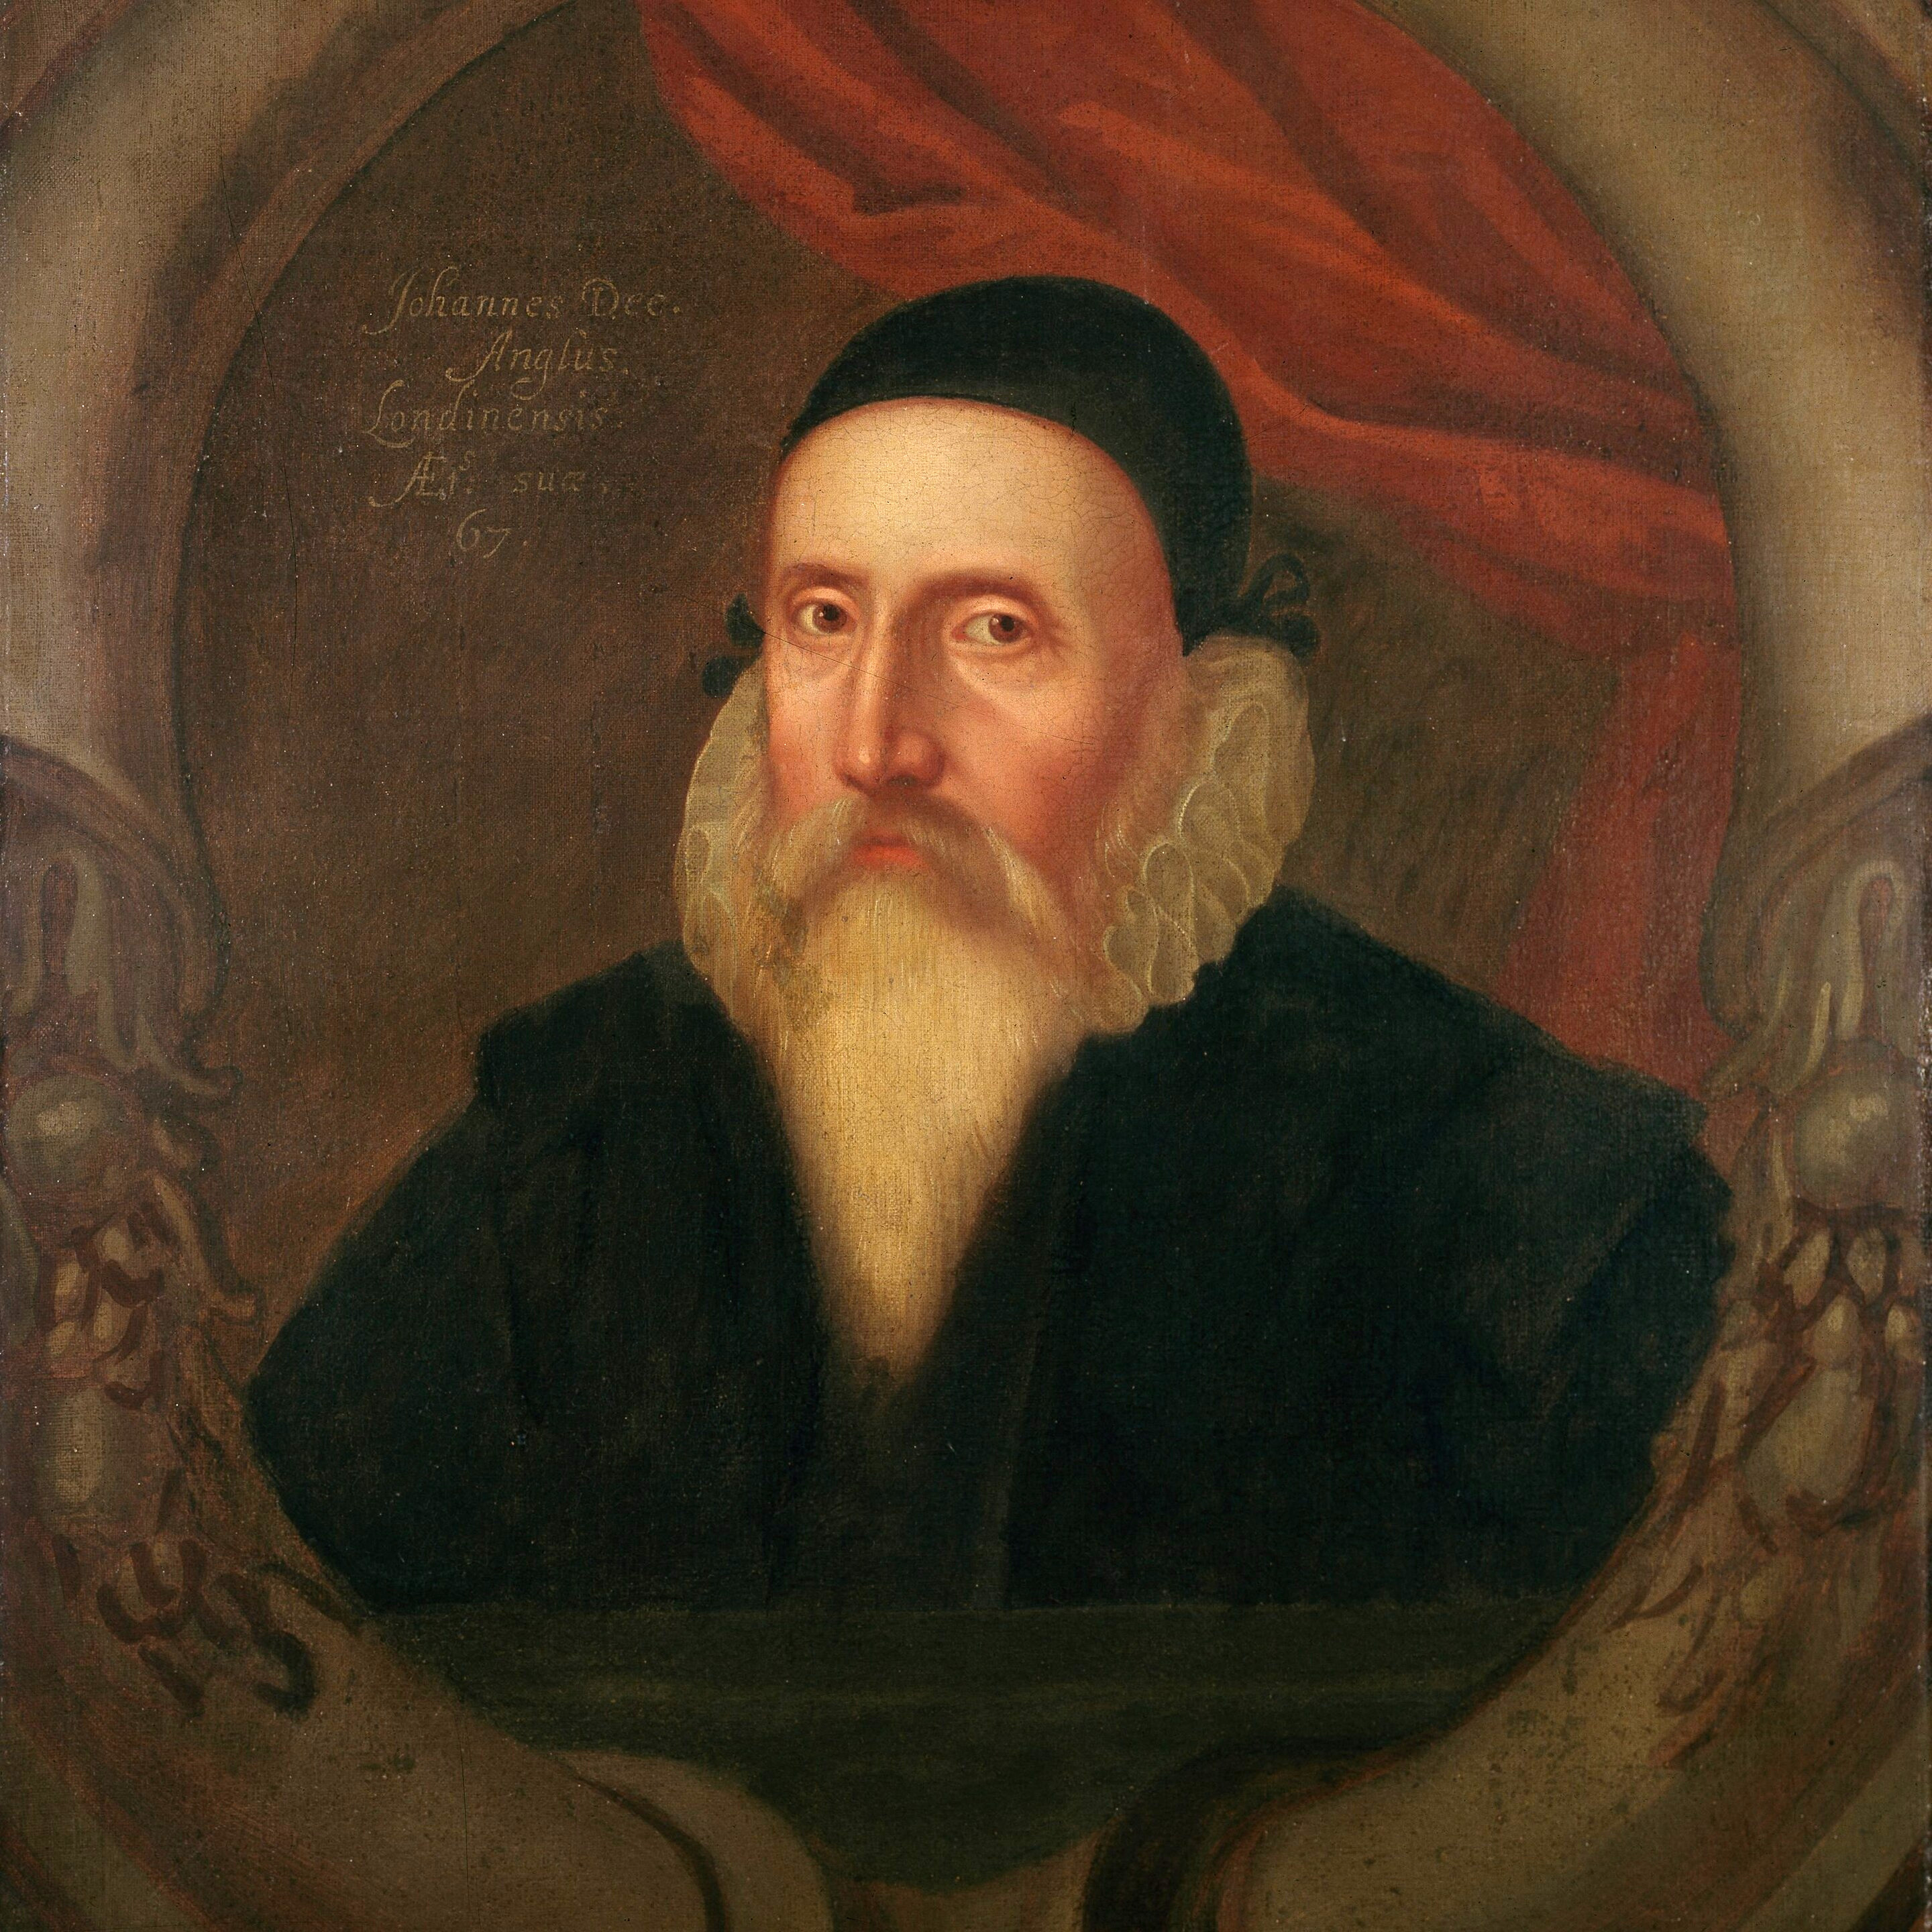 A 16th-century portrait by<br />an unknown artist.<ref>According to Charlotte Fell-Smith, this portrait was painted when Dee was 67. It belonged to grandson Rowland Dee and later to [[Elias Ashmole]], who left it to Oxford University.</ref>